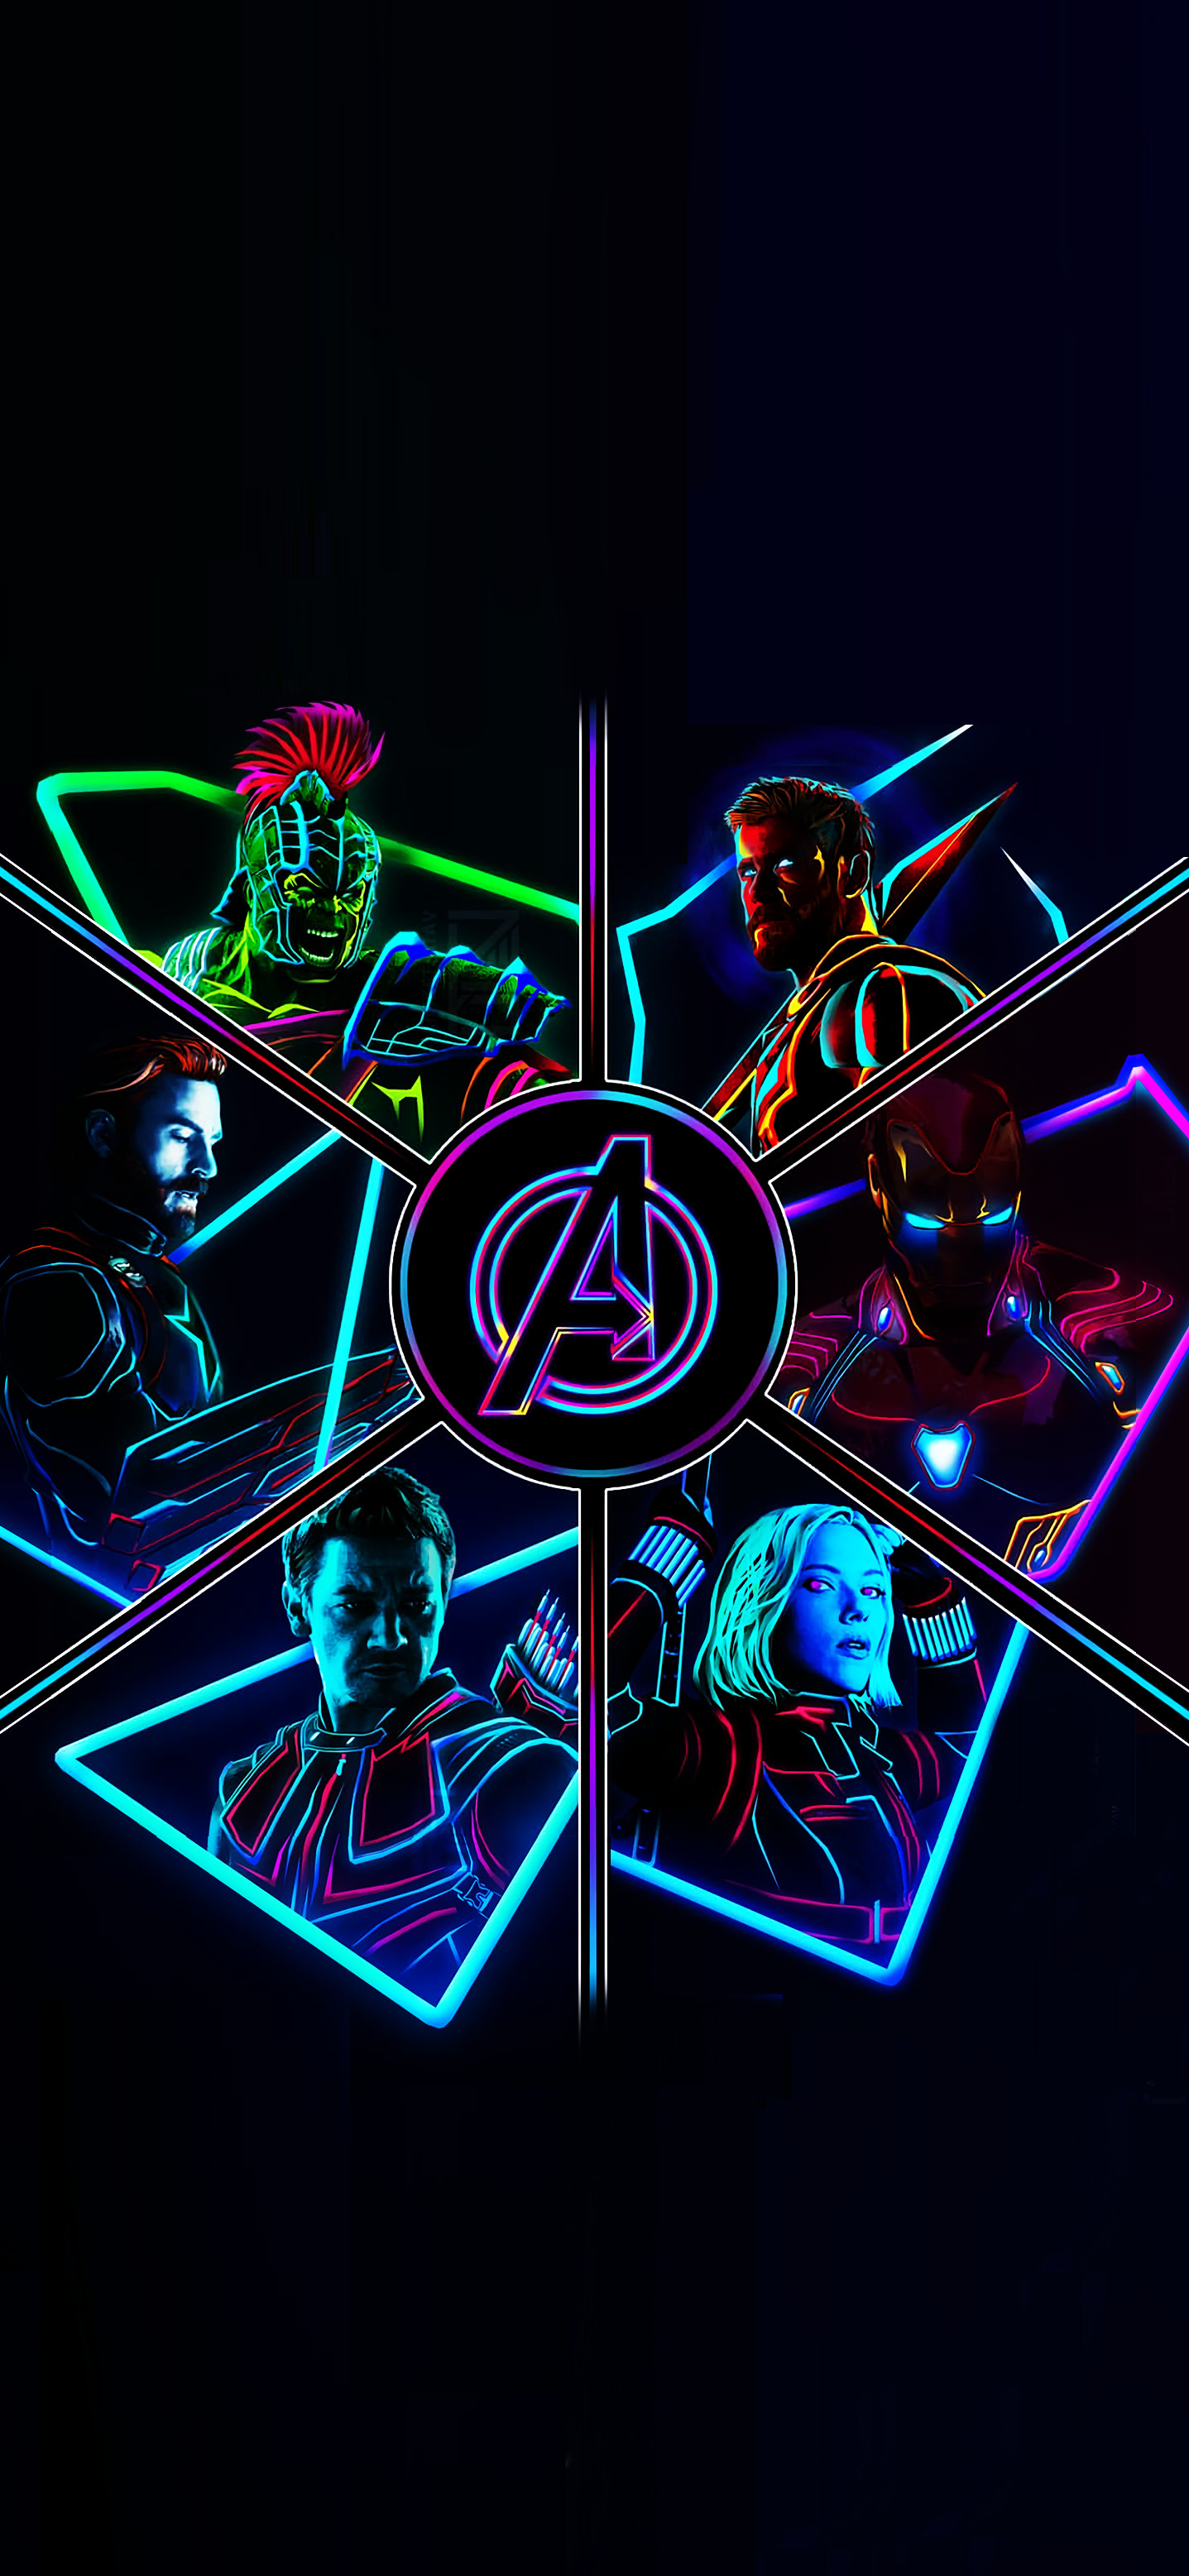 Res: 1437x3114, 2012 Neon Avengers Full Res Phone Wallpapers!